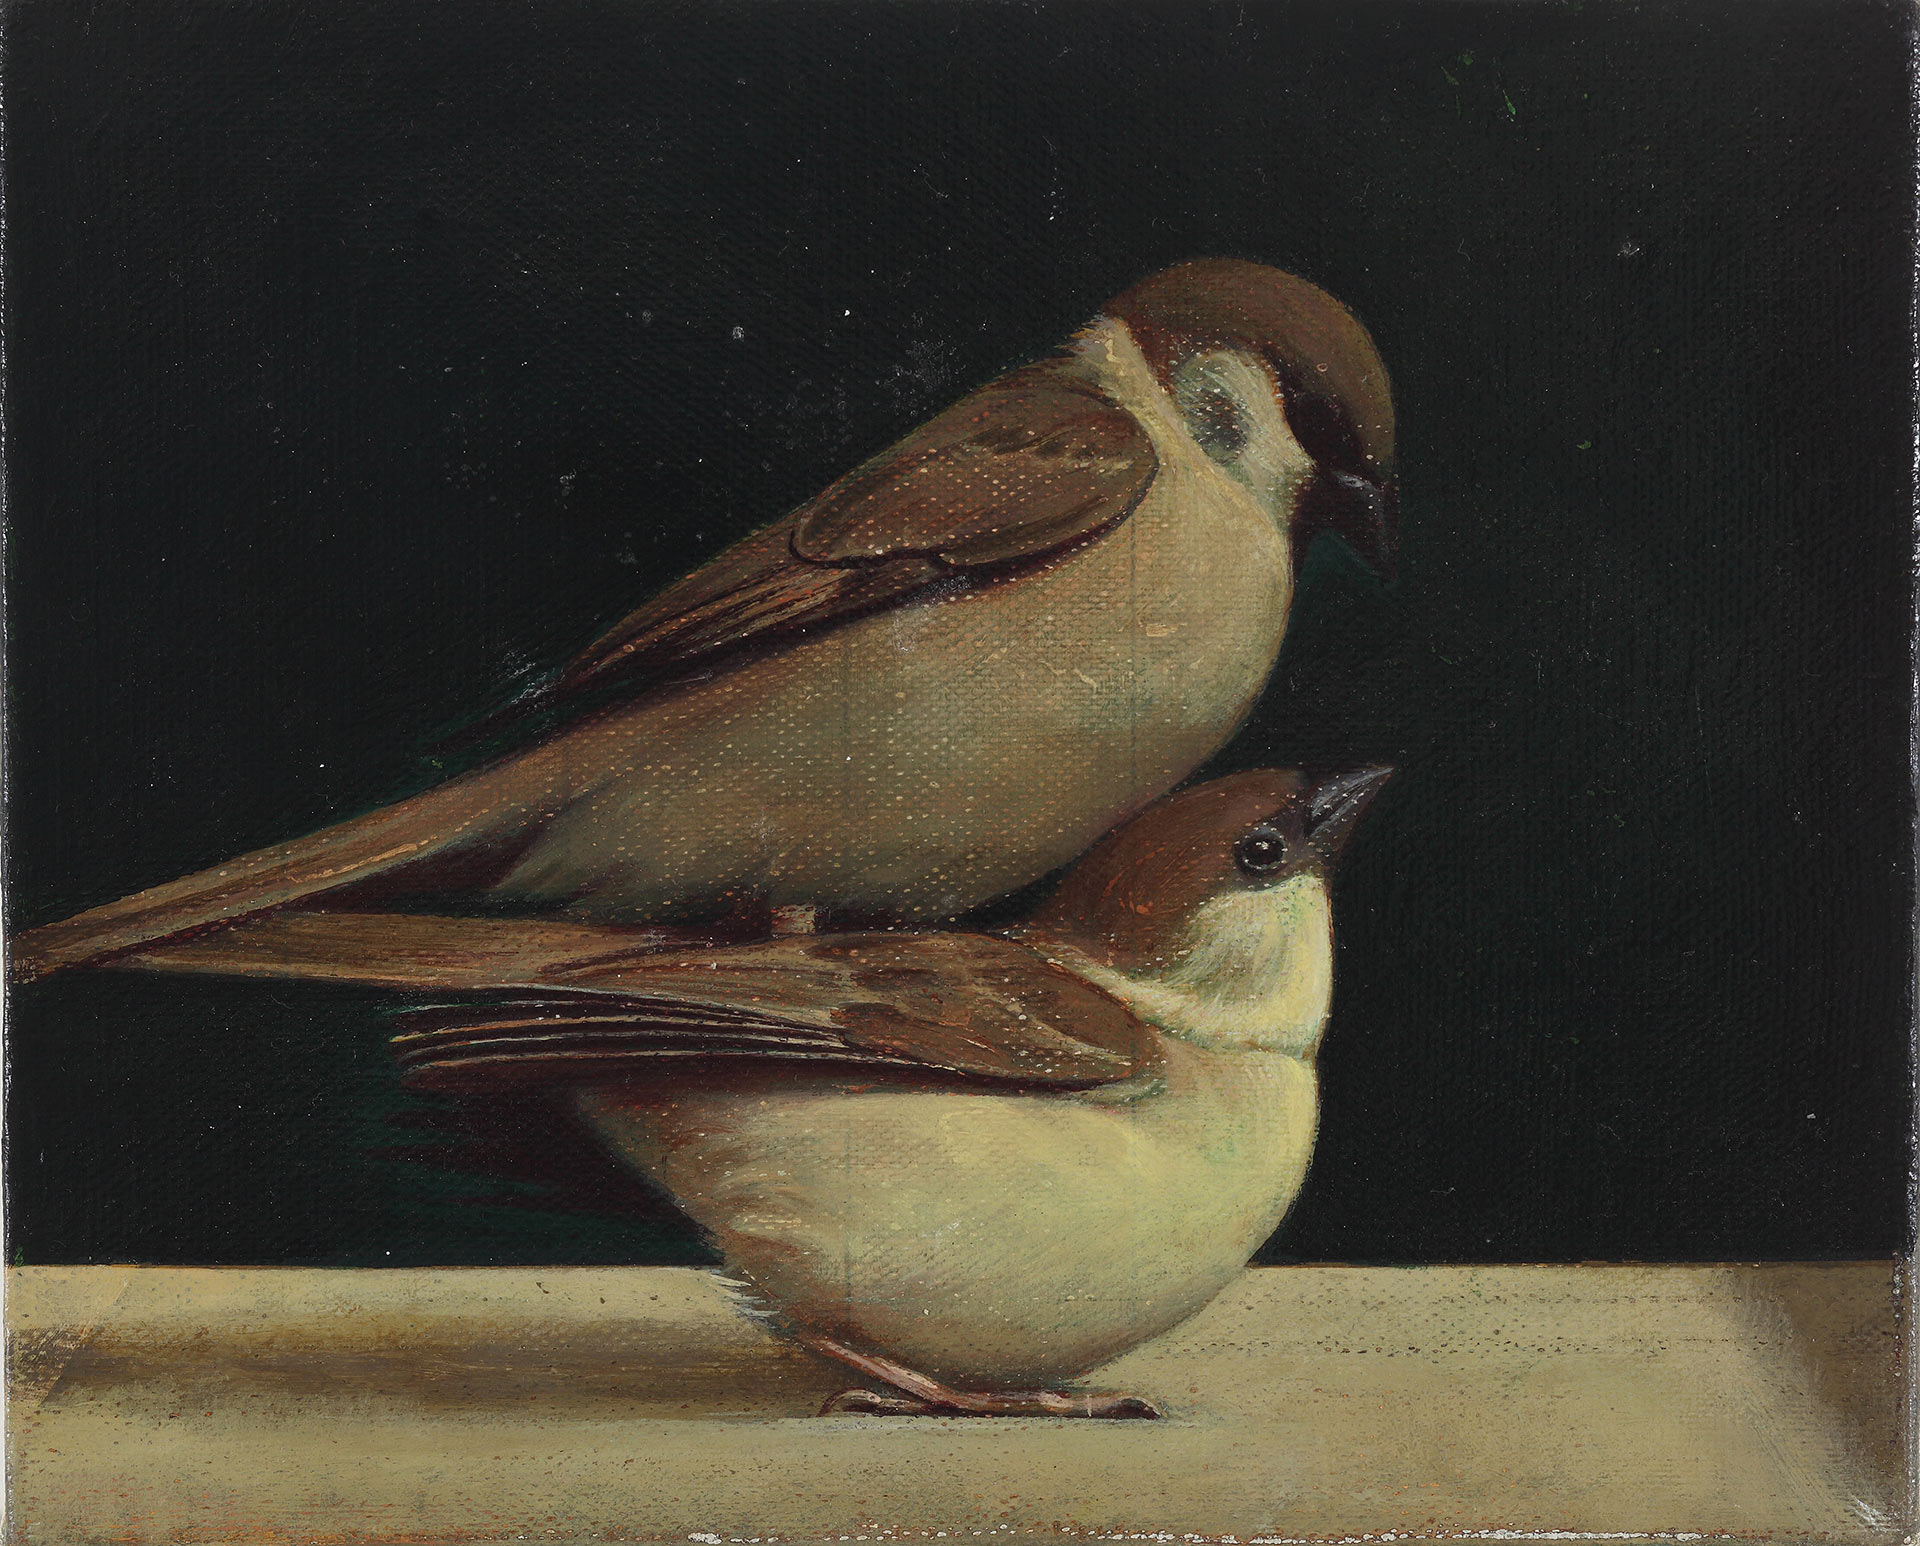 A painting by Liu Ye, titled bird on Bird, dated 2011.